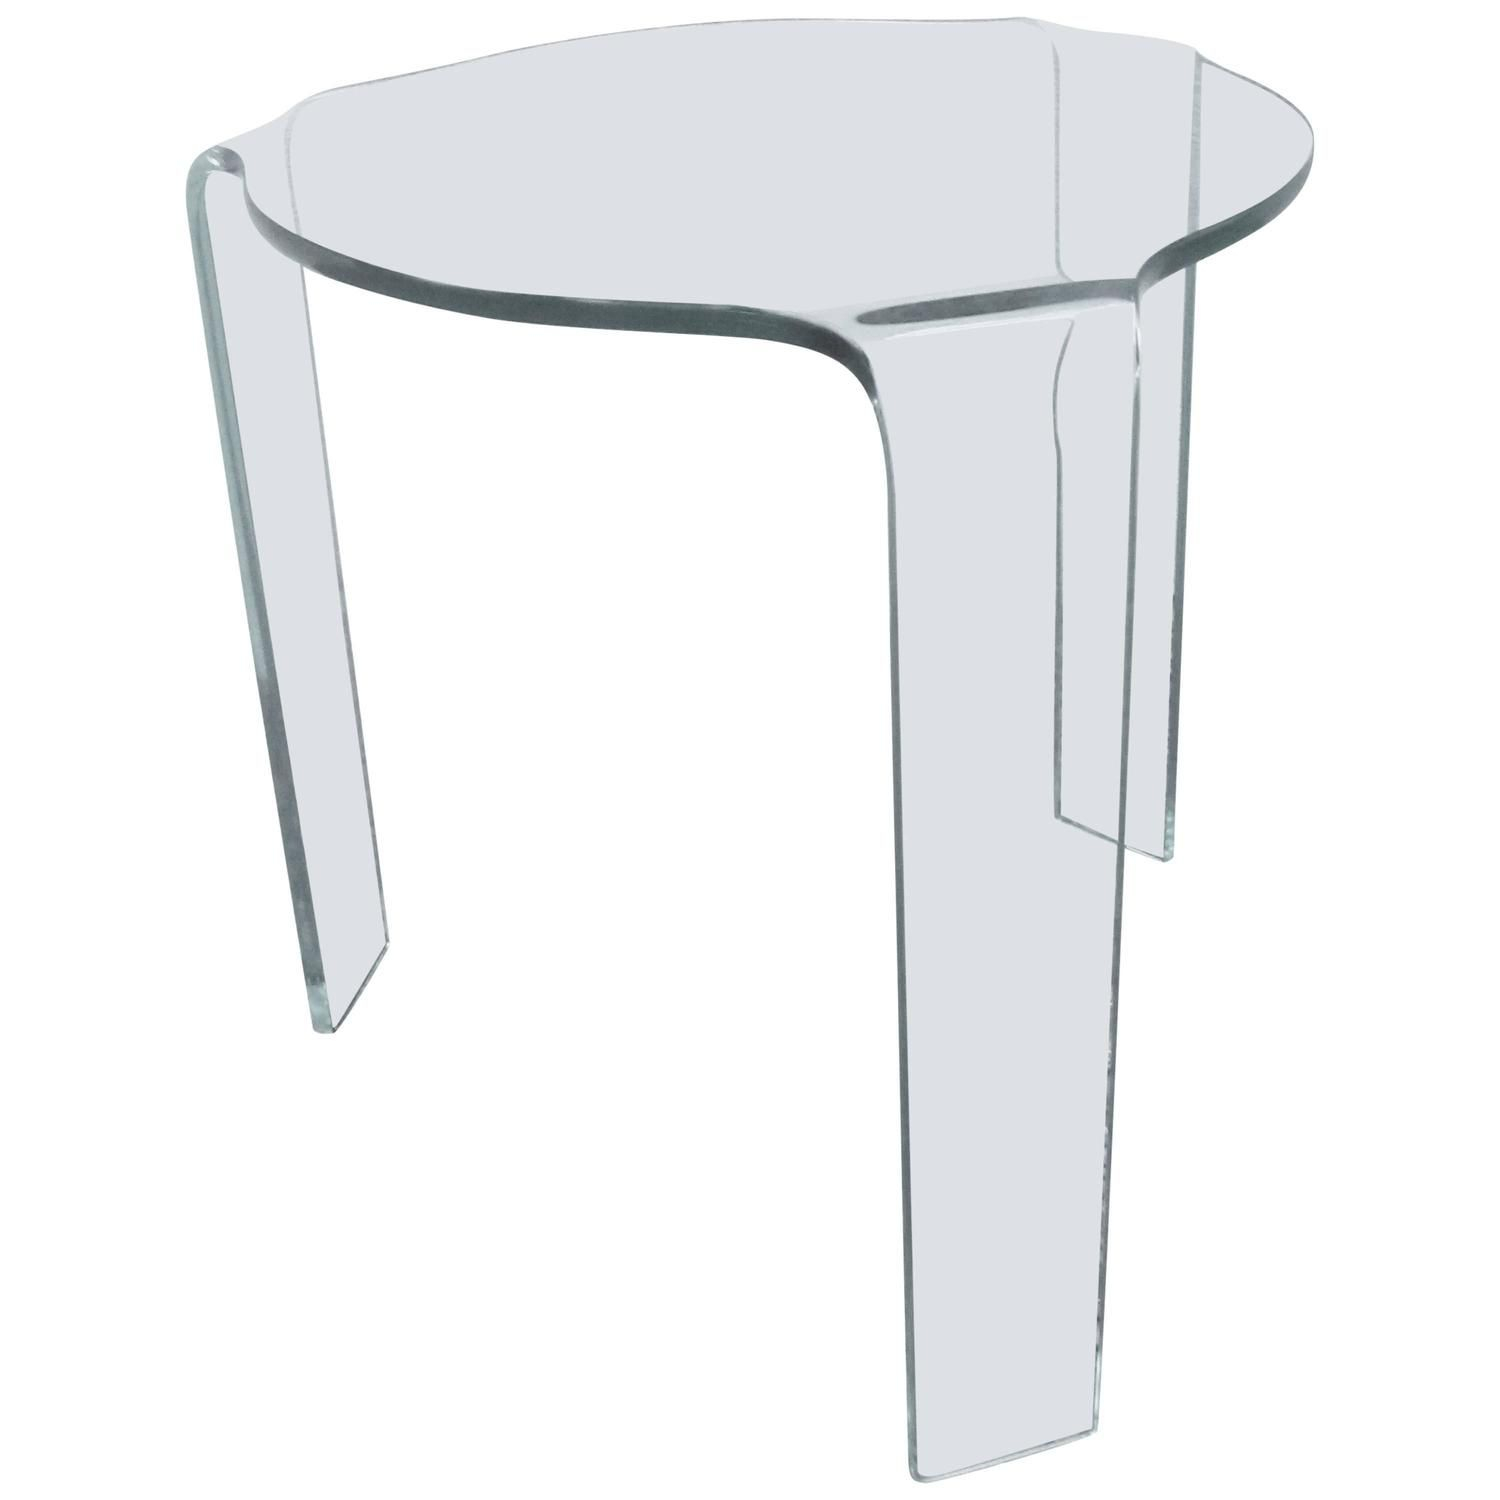 Fiam Molded Glass Table In 2019 Stools Small Tables Glass within proportions 1500 X 1500